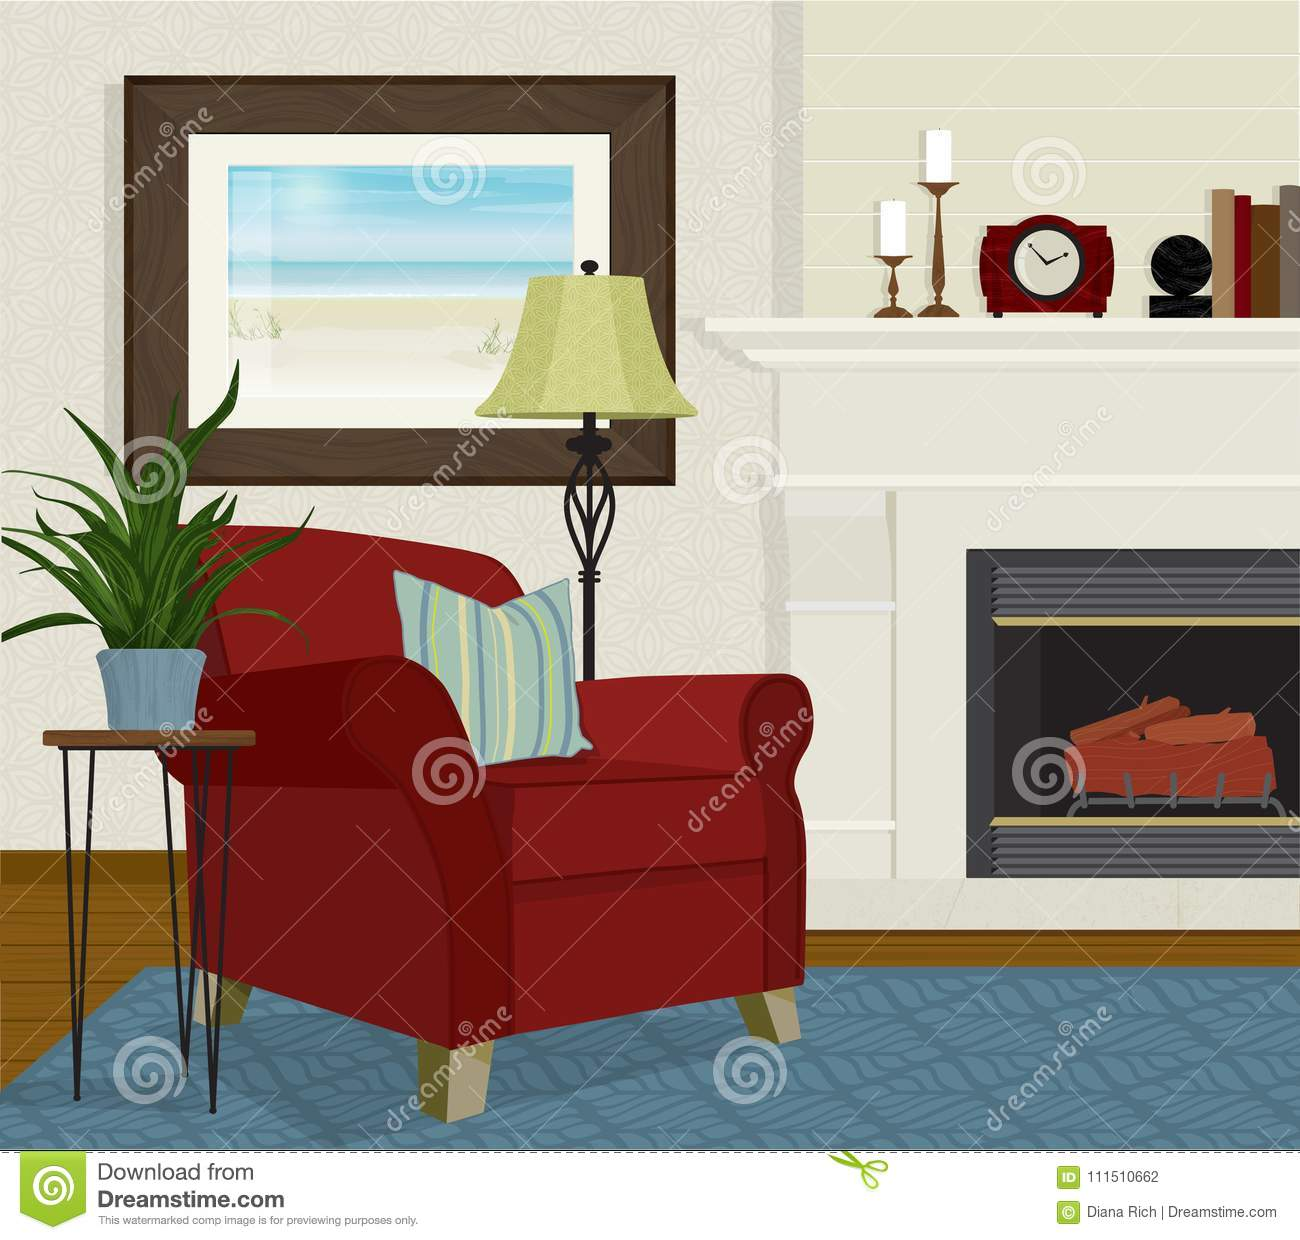 Living Room with Red Overstuffed Chair and Fireplace